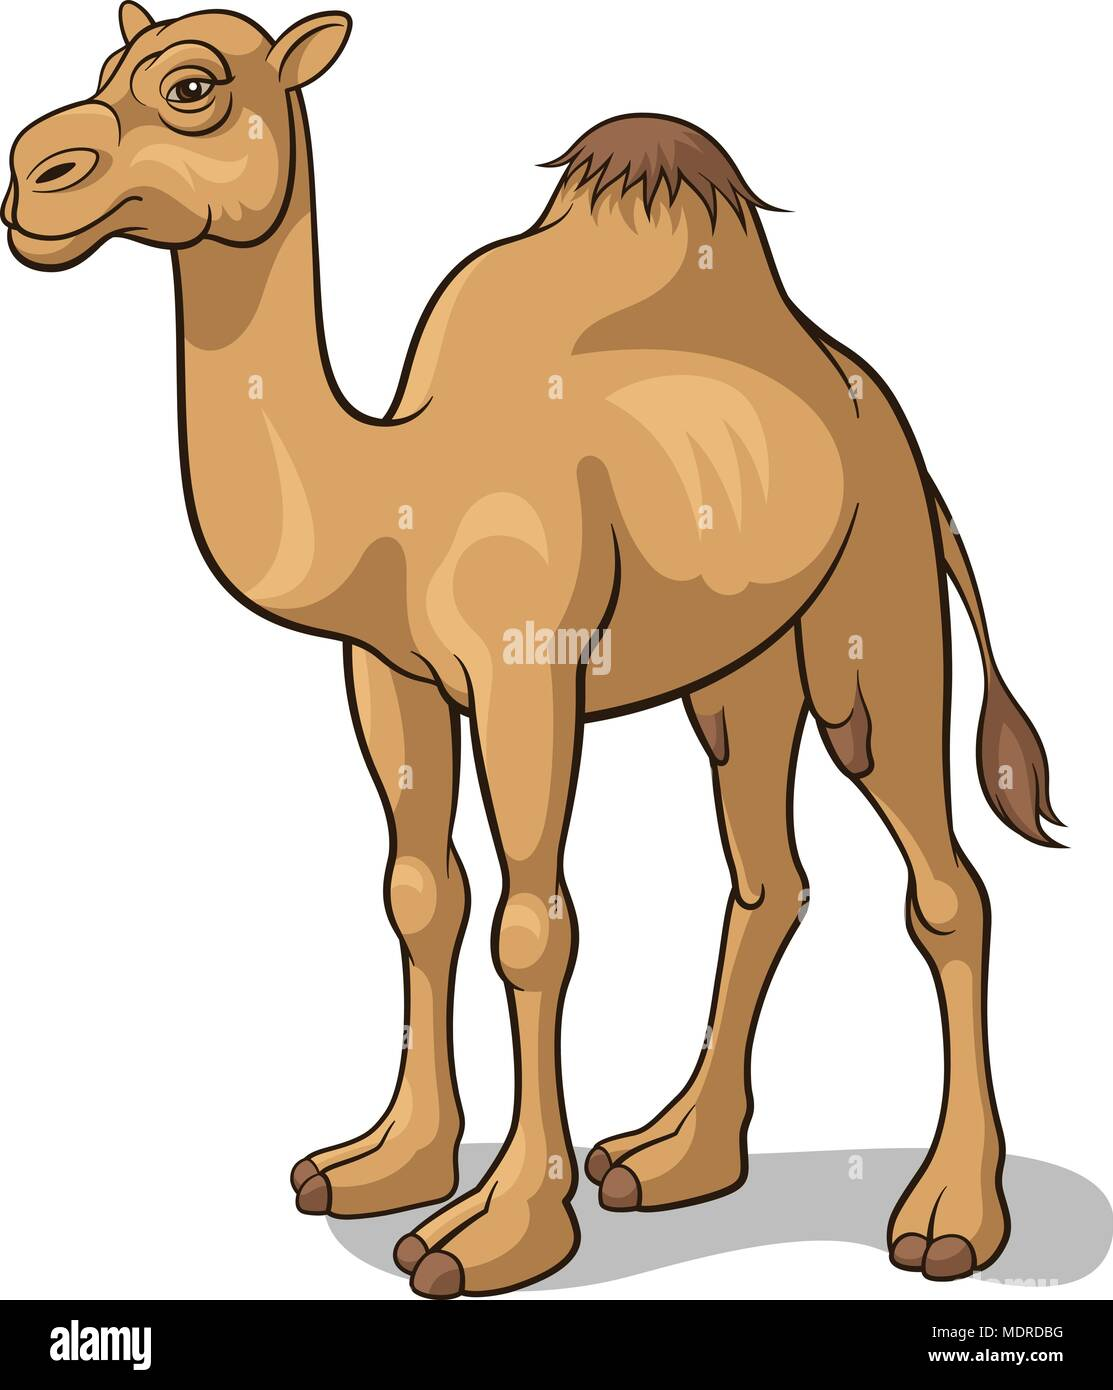 Cartoon Camel High Resolution Stock Photography And Images Alamy